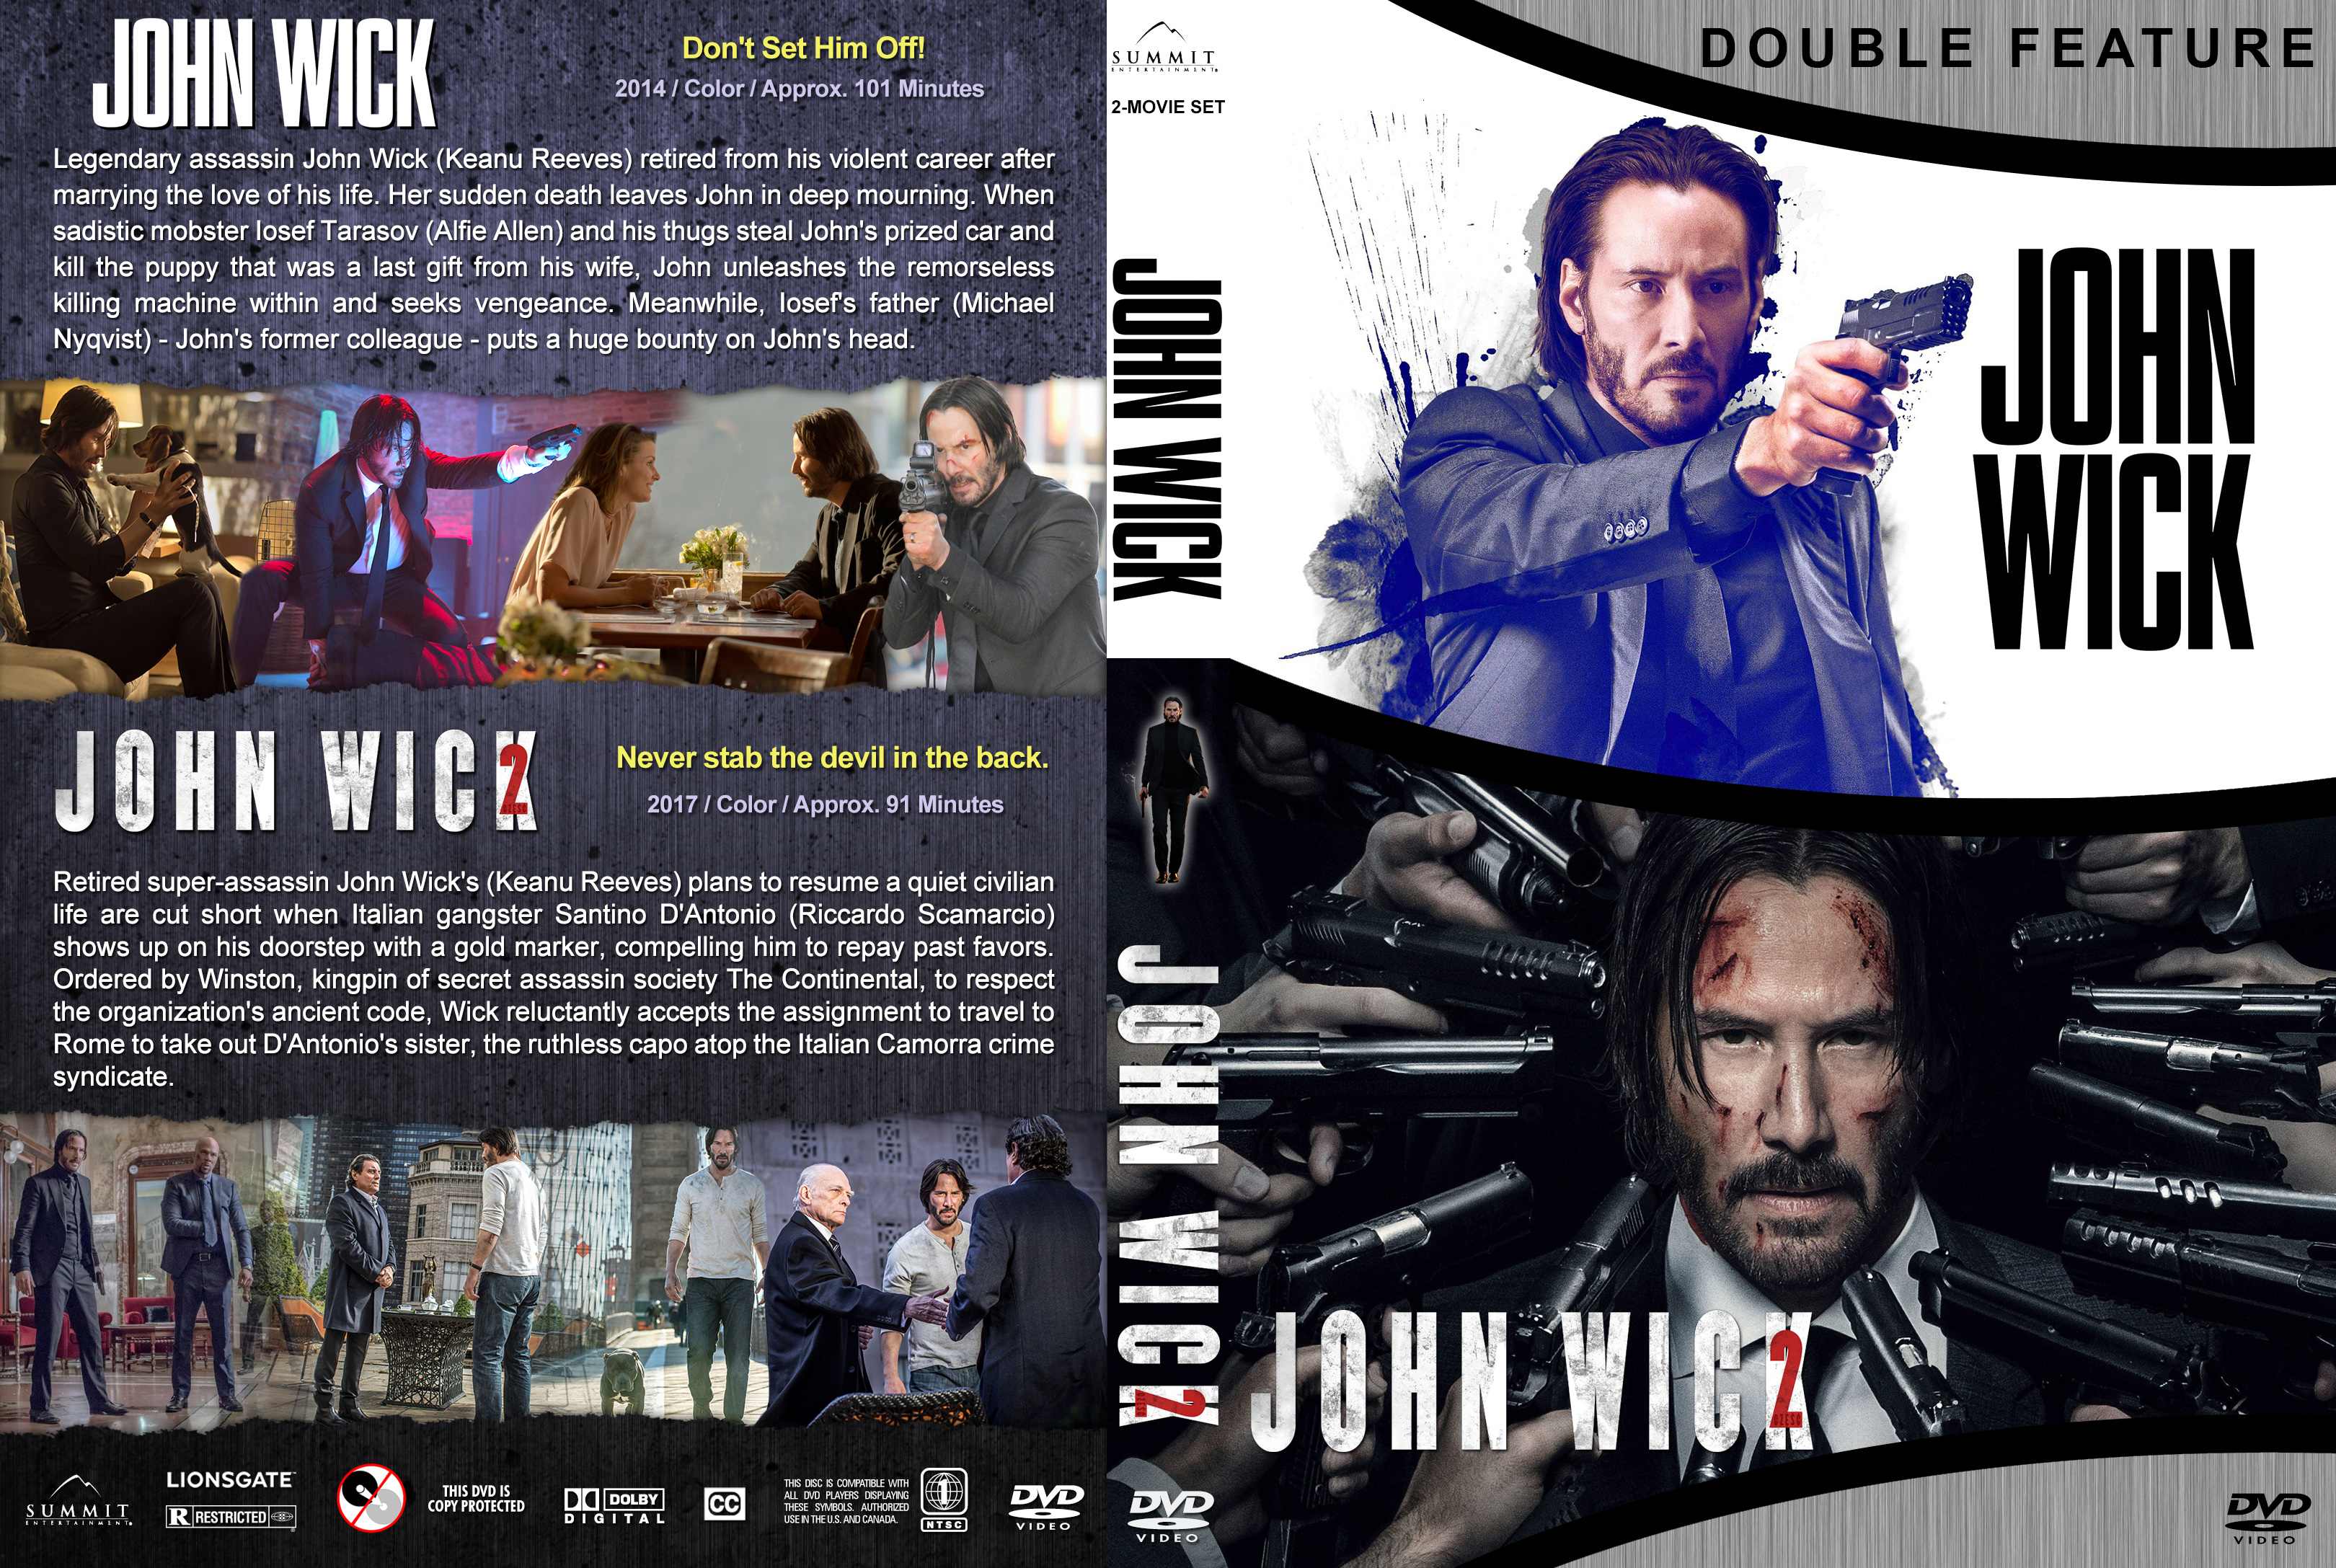 John Wick Double Feature 2017 Covers V3 Dvd Covers